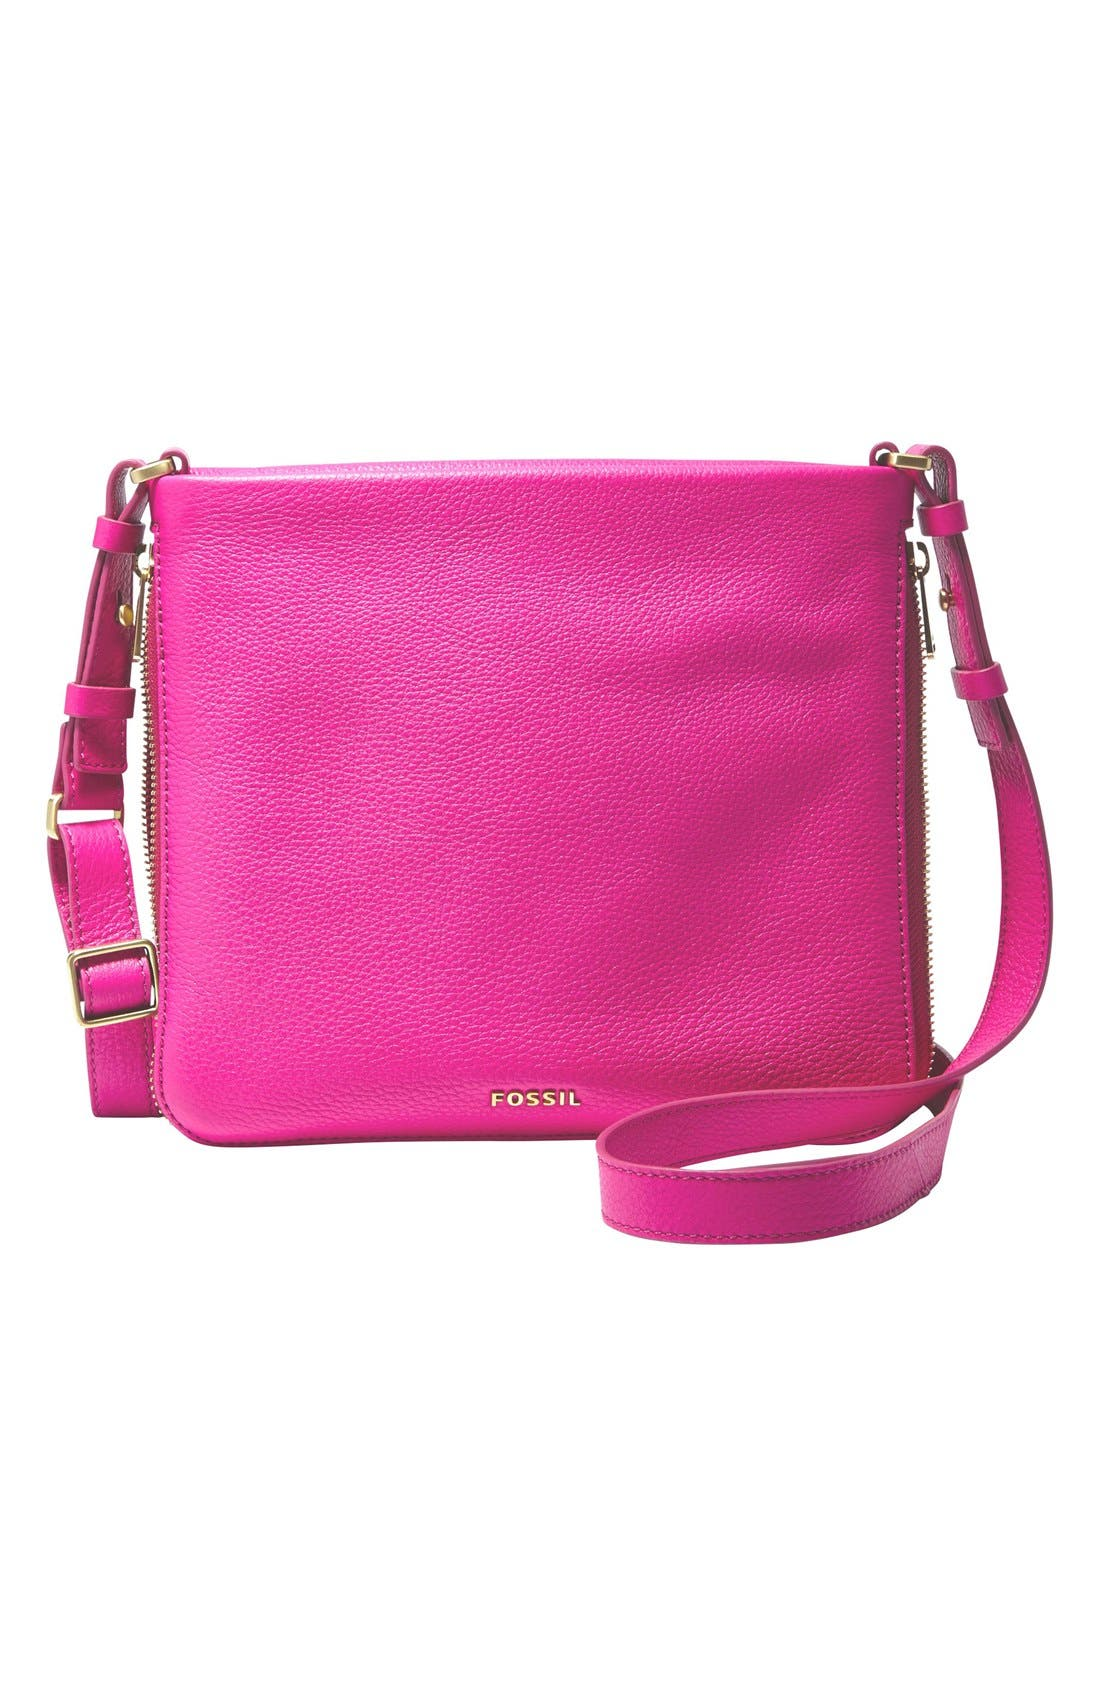 Main Image - Fossil 'Preston' Crossbody Bag